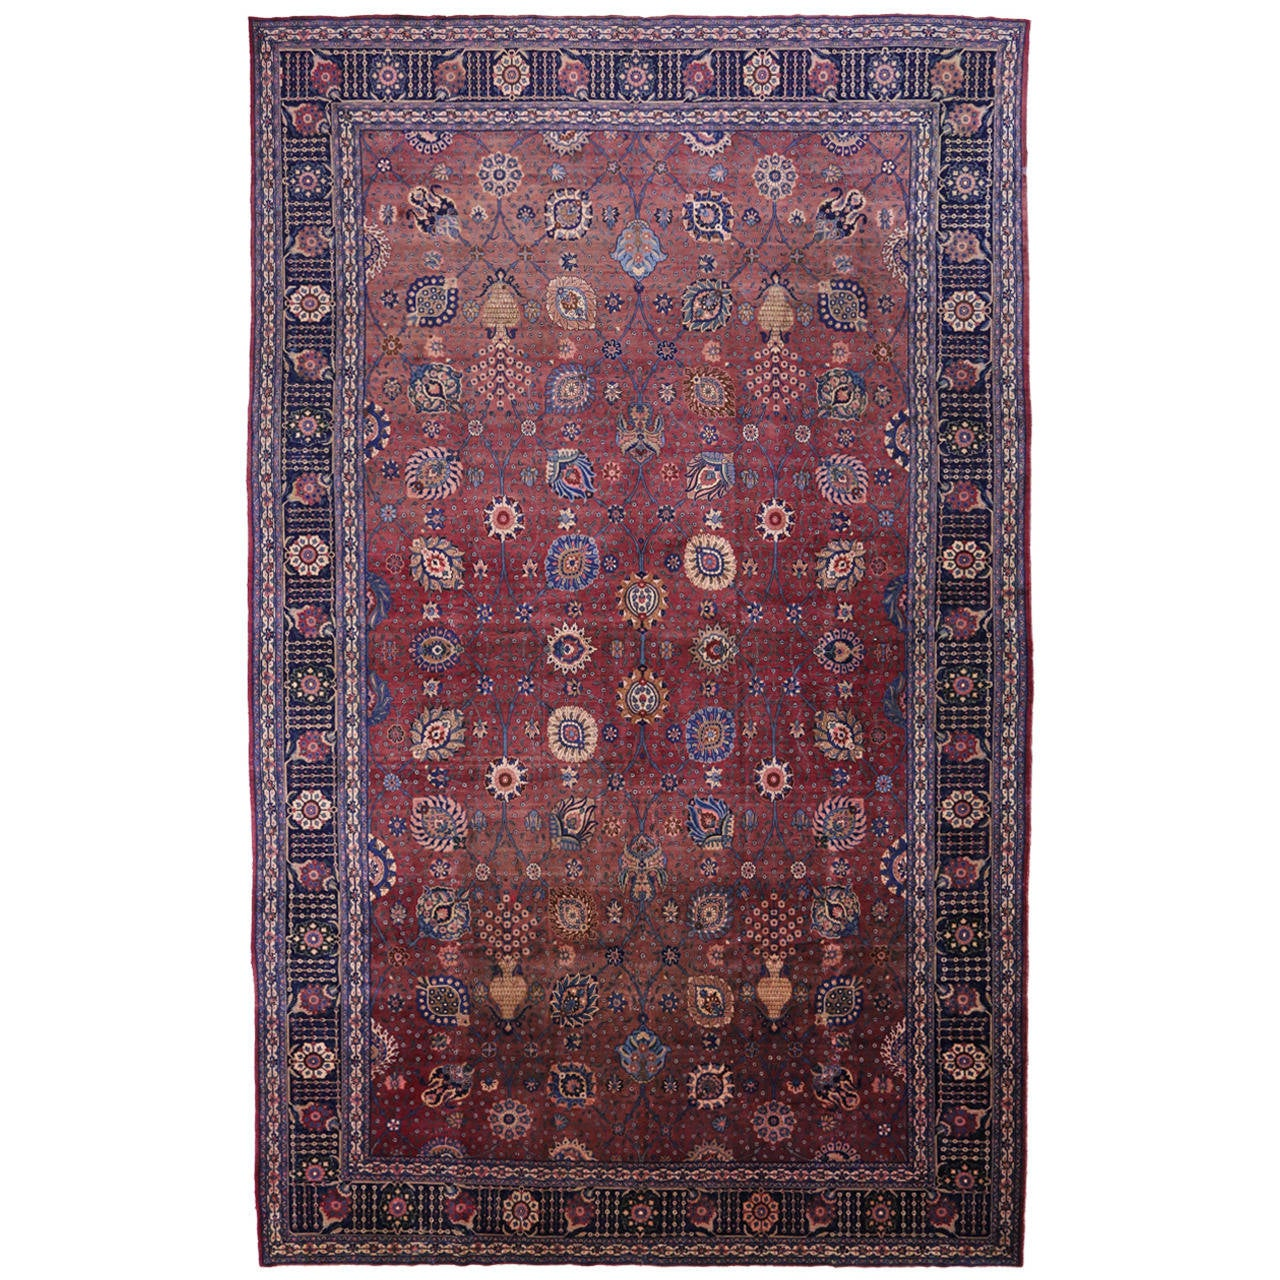 Antique Indian Agra Gallery Rug with Modern Design in Jewel-Tone Colors